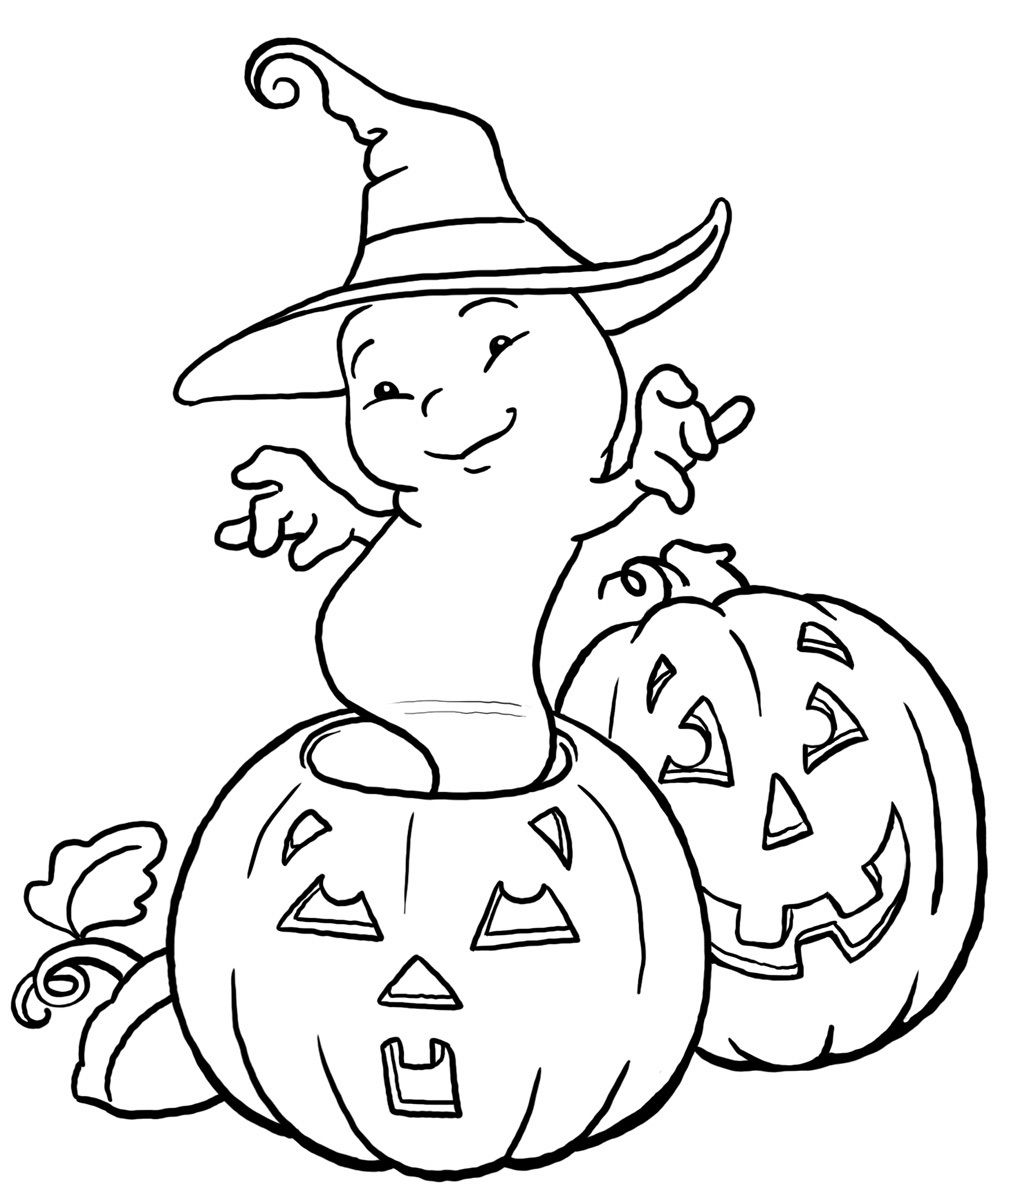 ghost and pumpkin printable halloween coloring pages halloween coloring pages ghost coloring pages pumpkin coloring pages free online coloring pages and - Free Online Halloween Coloring Pages